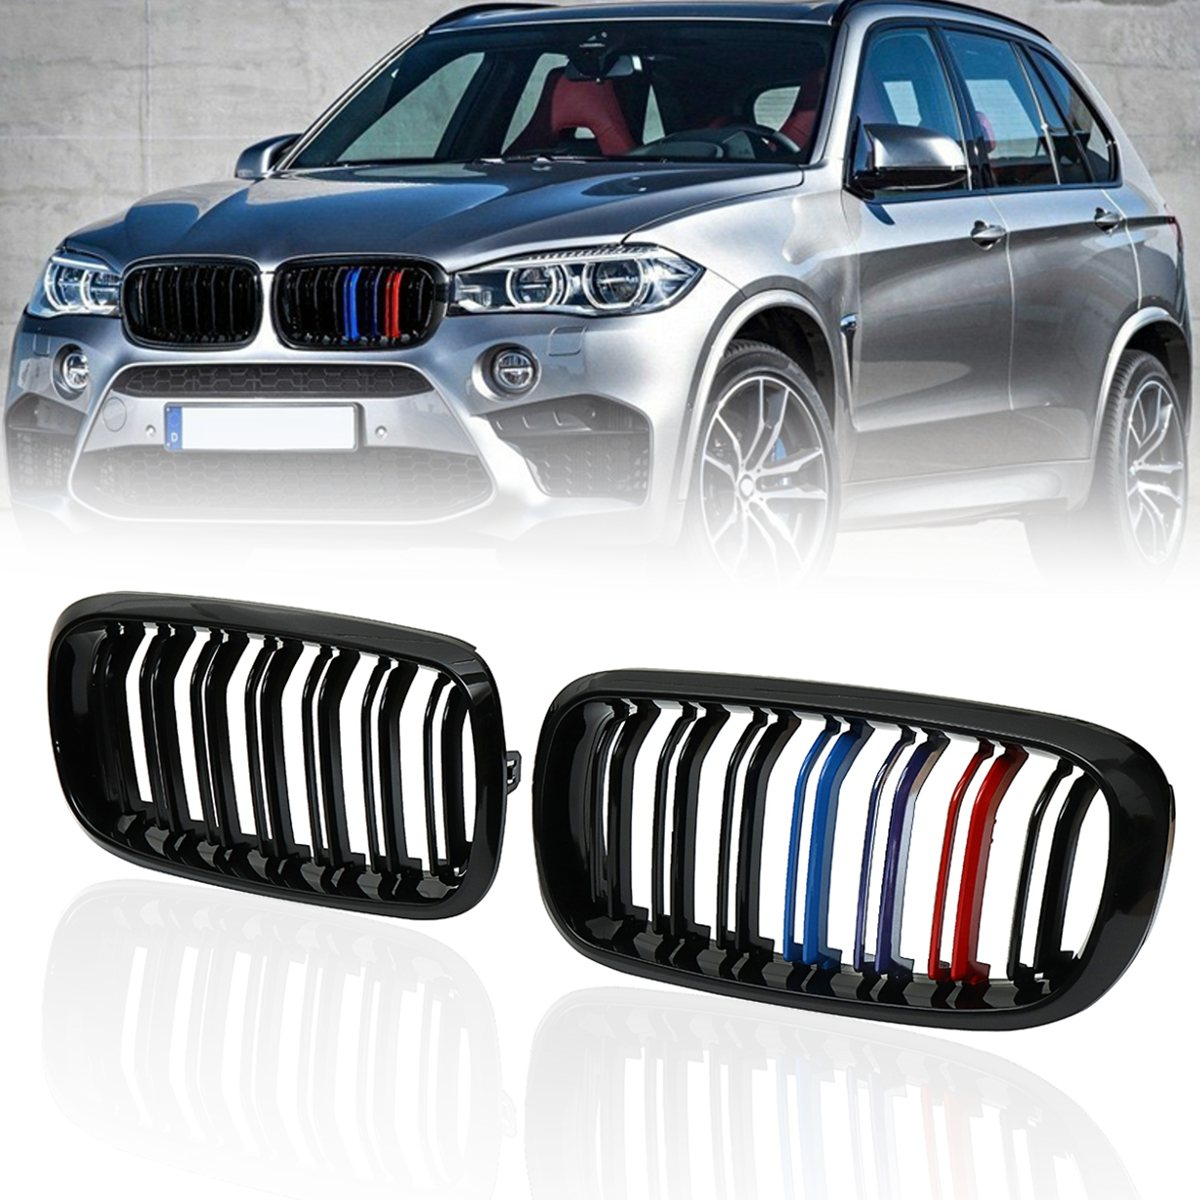 купить Pair Matte Gloss Black M Color Front Double Slat Kidney Grille For BMW F86 F15 F16 X5 X6 X5M F85 X6M F86 2014 2015 2016 2017